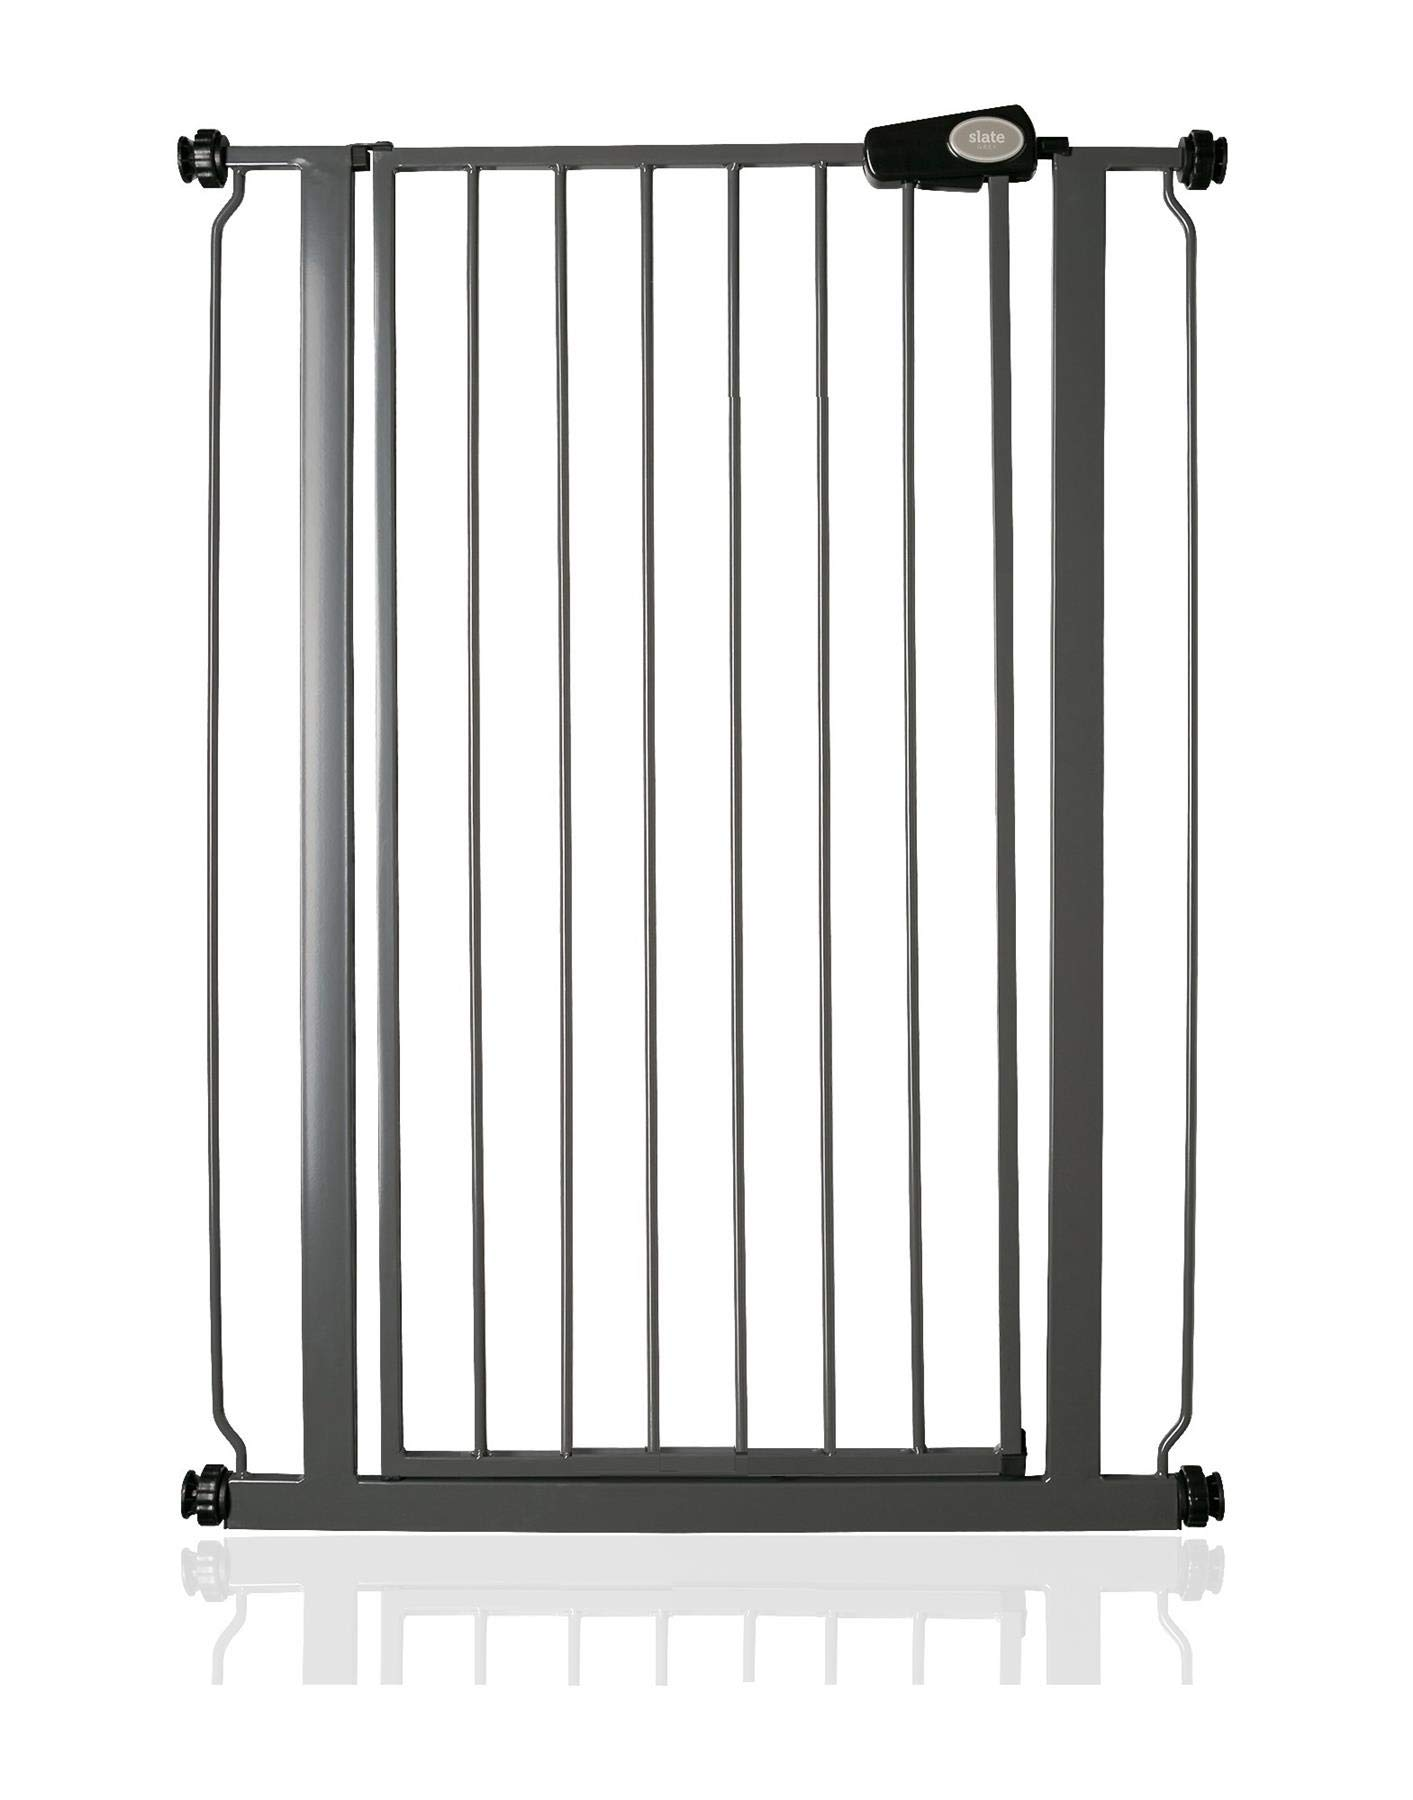 Bettacare Child and Pet Gate Slate Grey Standard 75cm - 82.6cm Bettacare Fits openings from 75cm to 83cm, height of gate 104cm Pressure fitted gate with slate grey finish One-handed operation 2